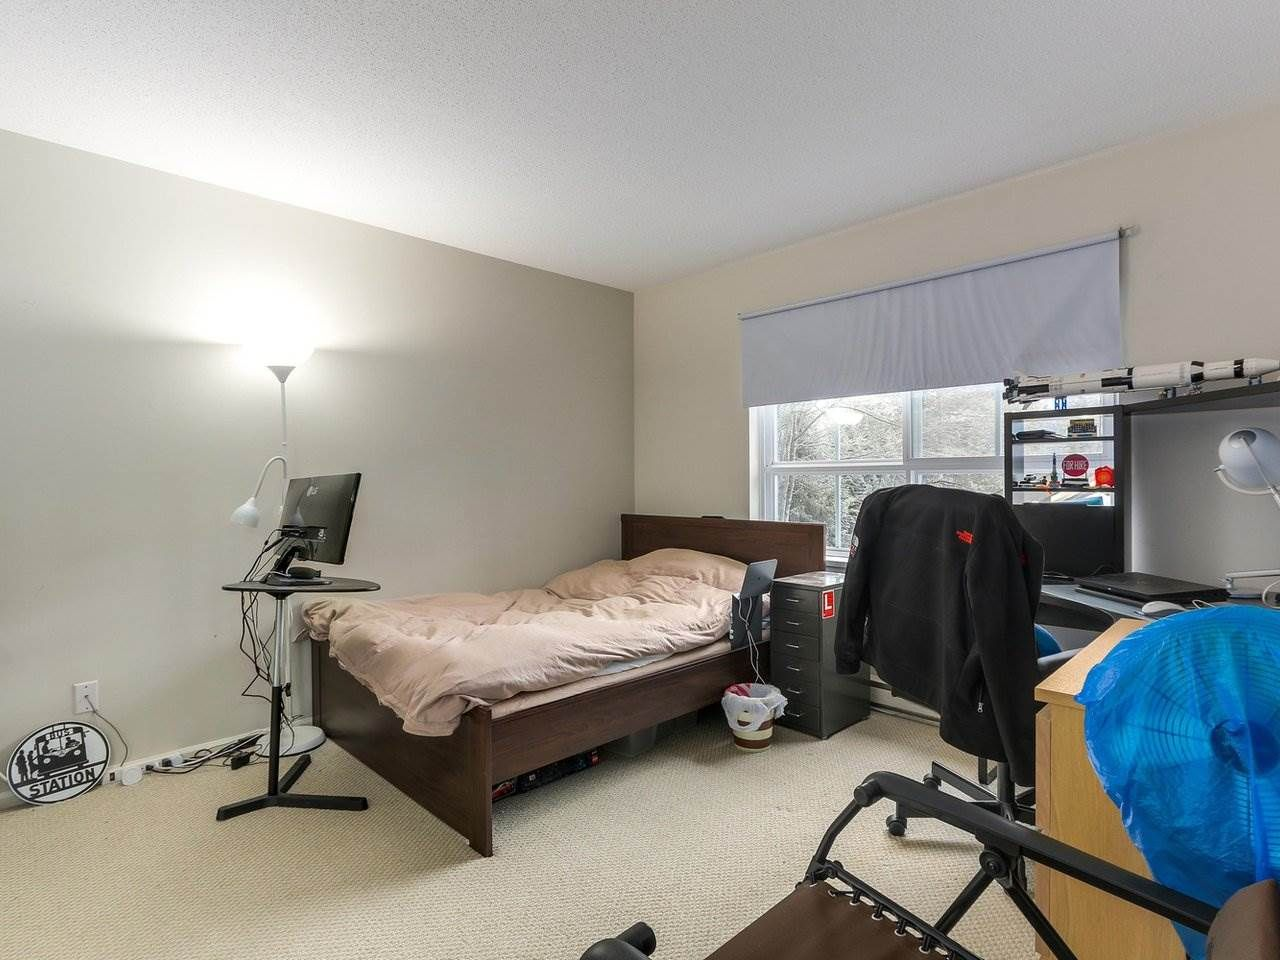 Photo 15: Photos: 205 3388 MORREY Court in Burnaby: Sullivan Heights Condo for sale (Burnaby North)  : MLS®# R2326824